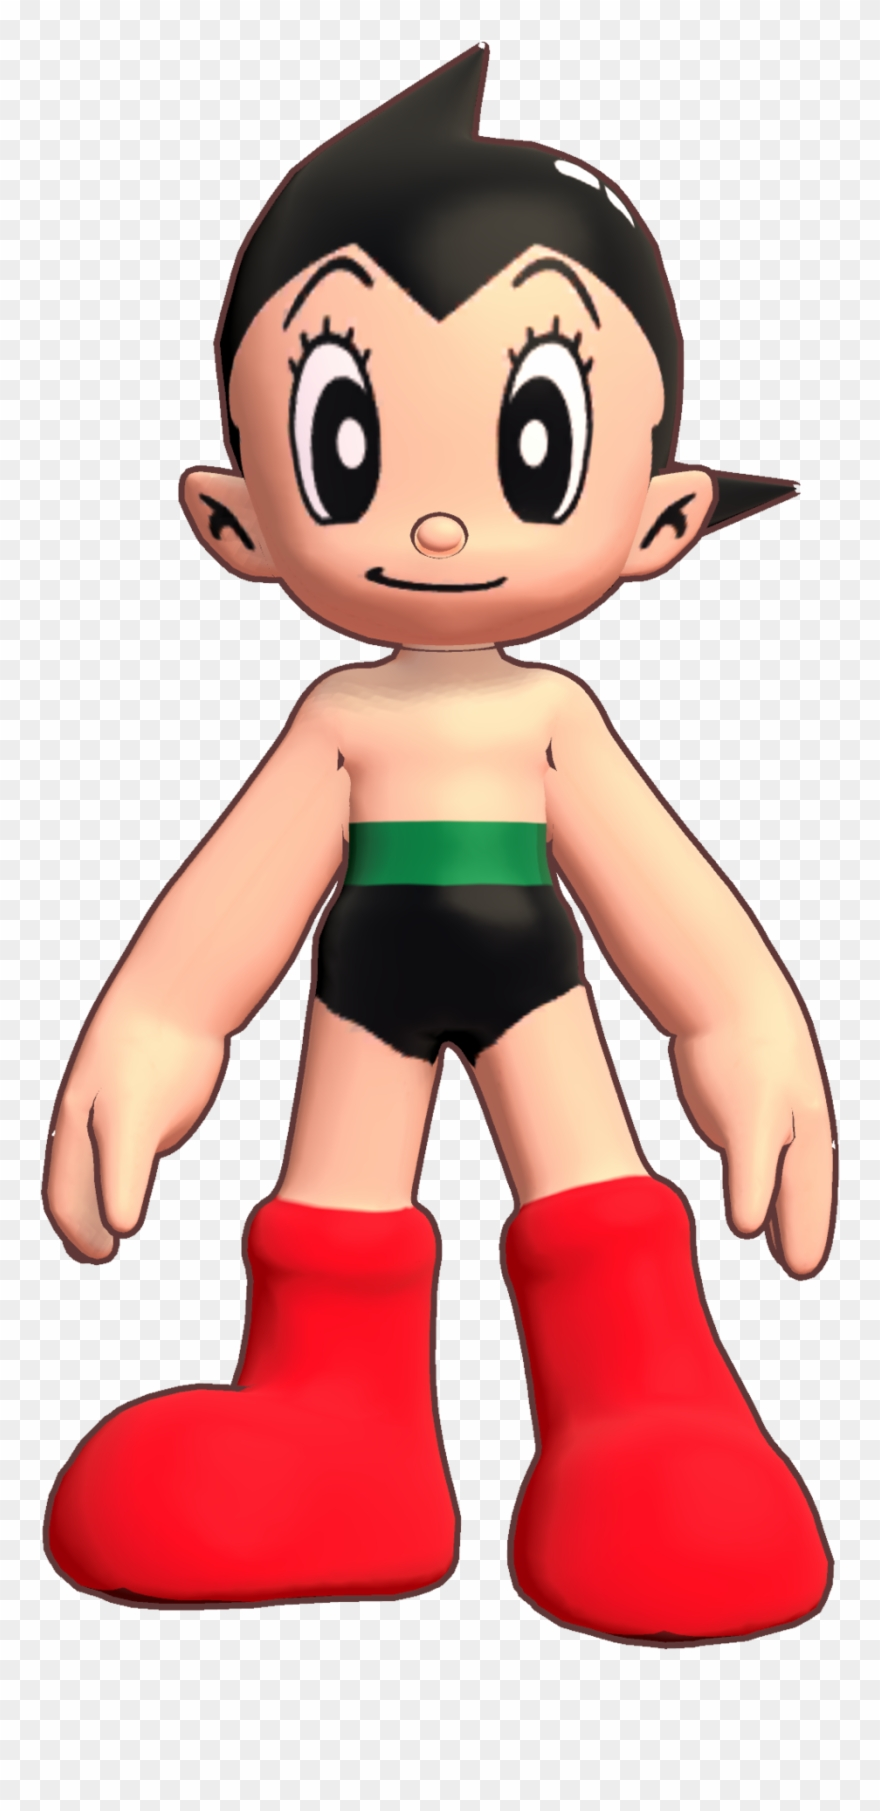 Astro boy clipart image black and white stock 3d Clipart Boys - Astro Boy Dash 3d - Png Download (#3807994 ... image black and white stock